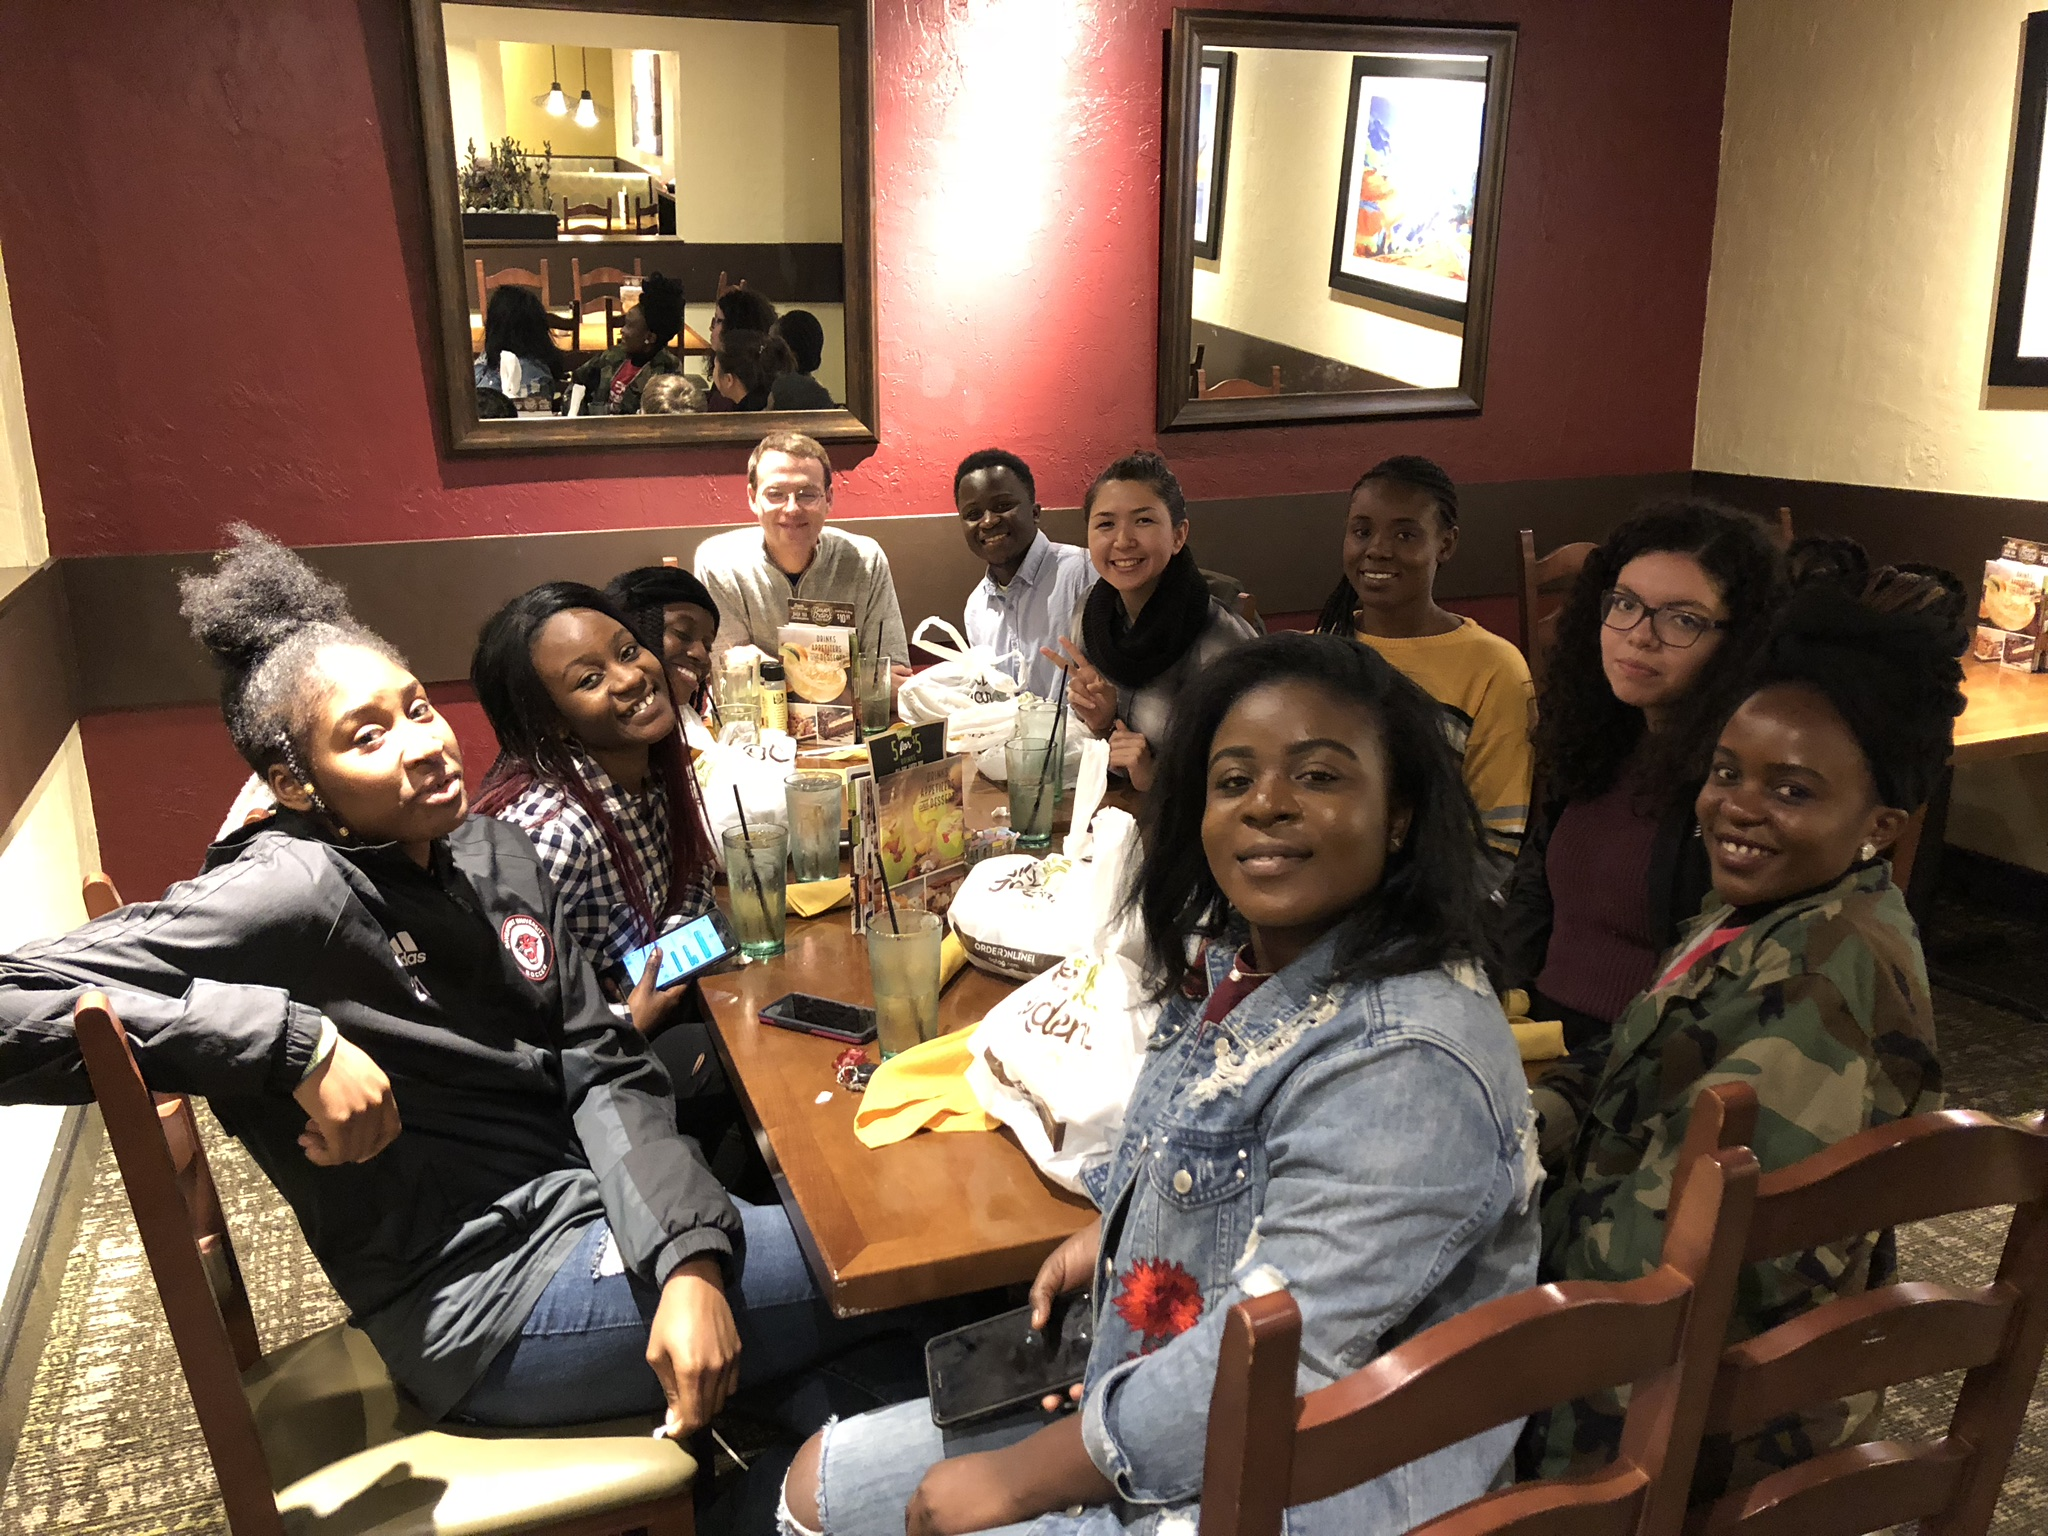 Dinner with the GRCC crew!